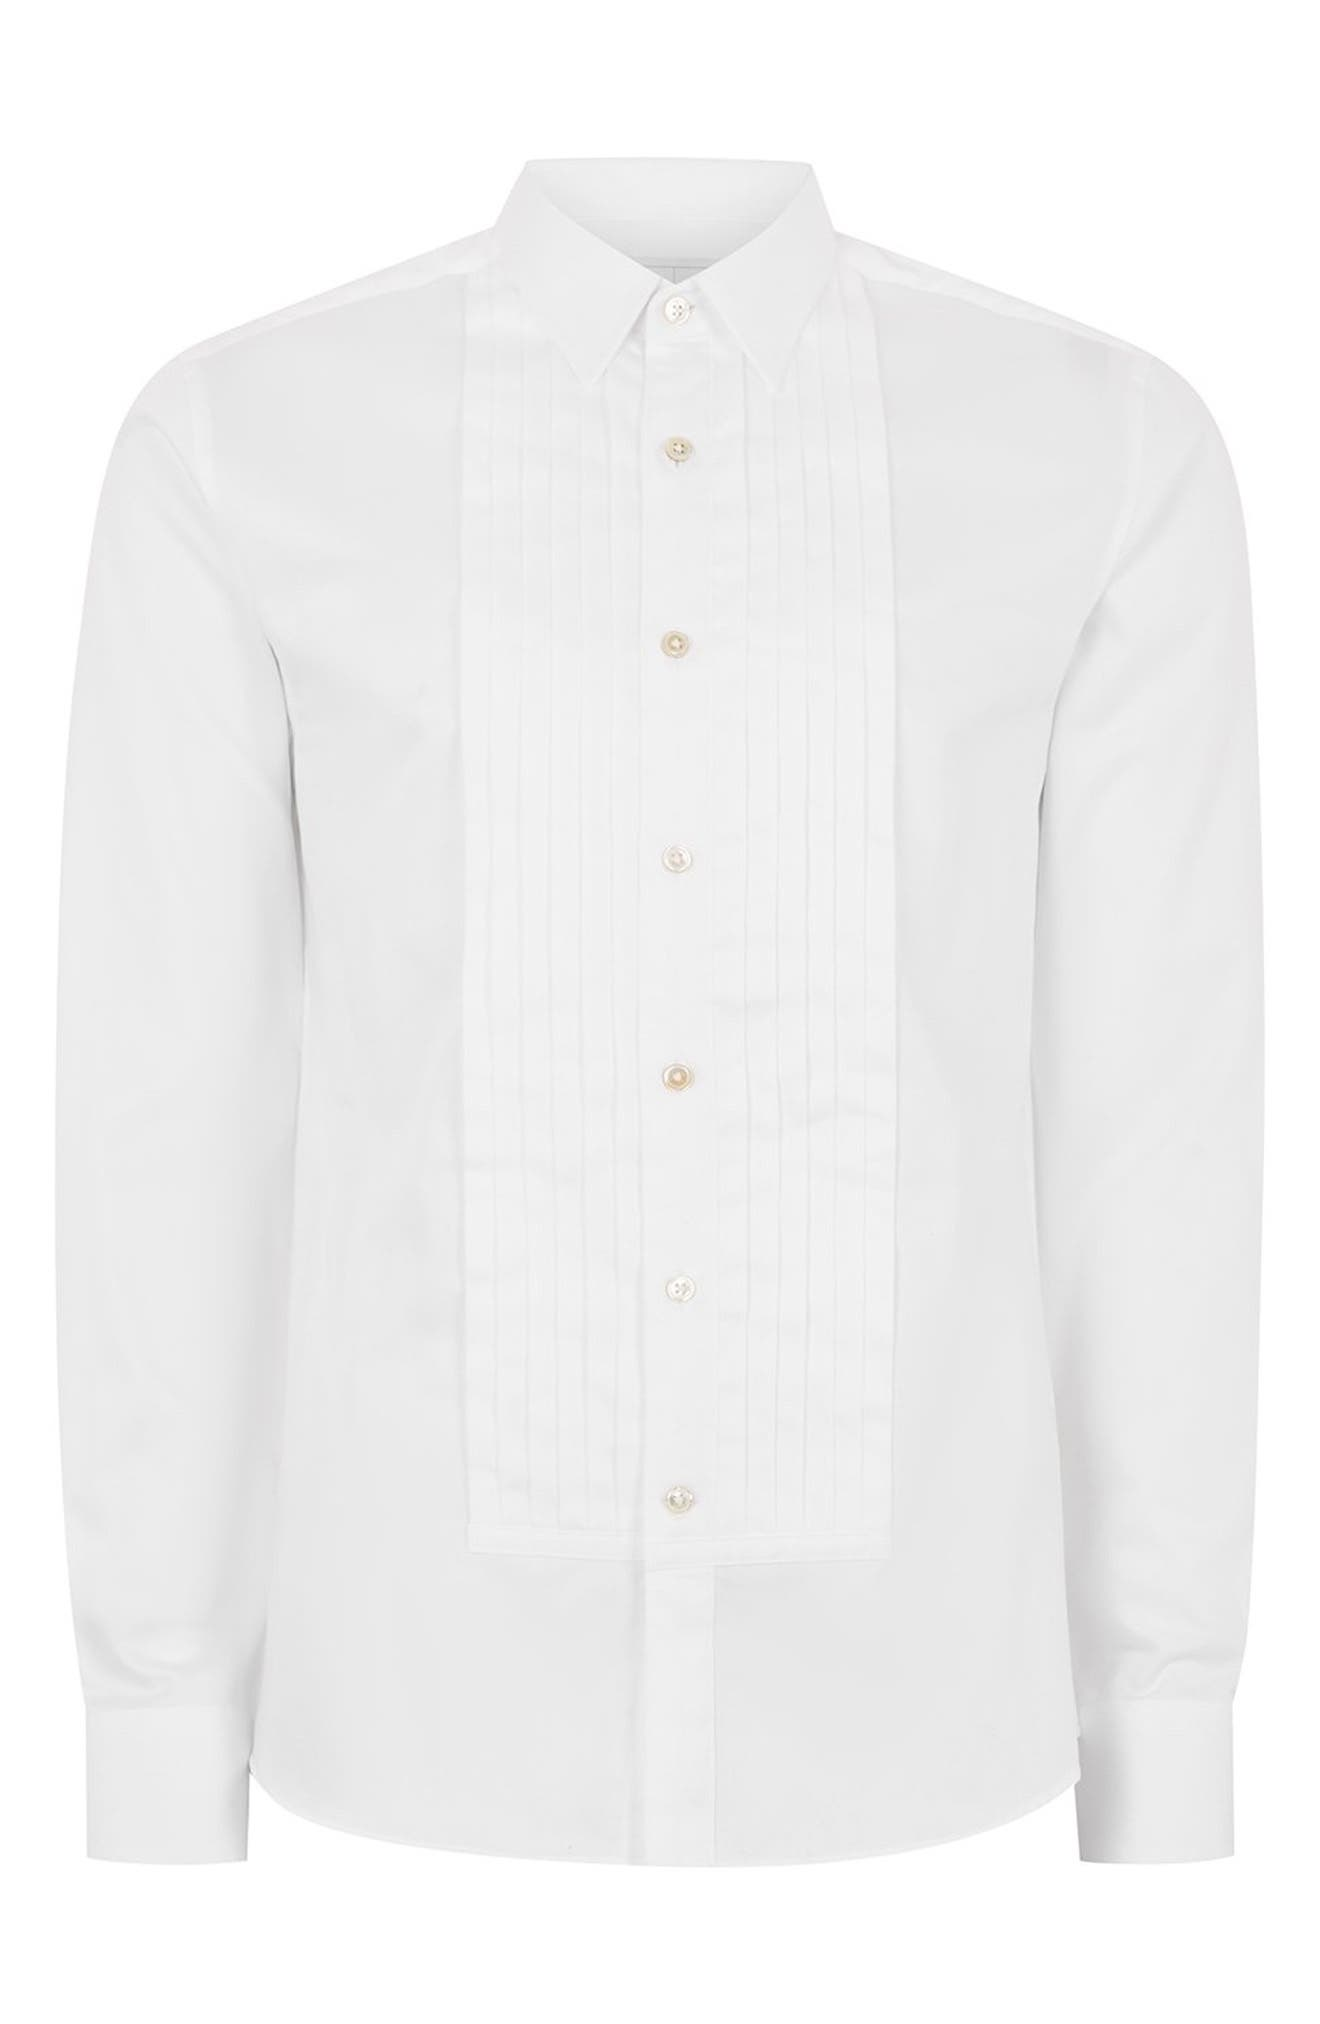 Pleated Tuxedo Shirt,                             Alternate thumbnail 5, color,                             White